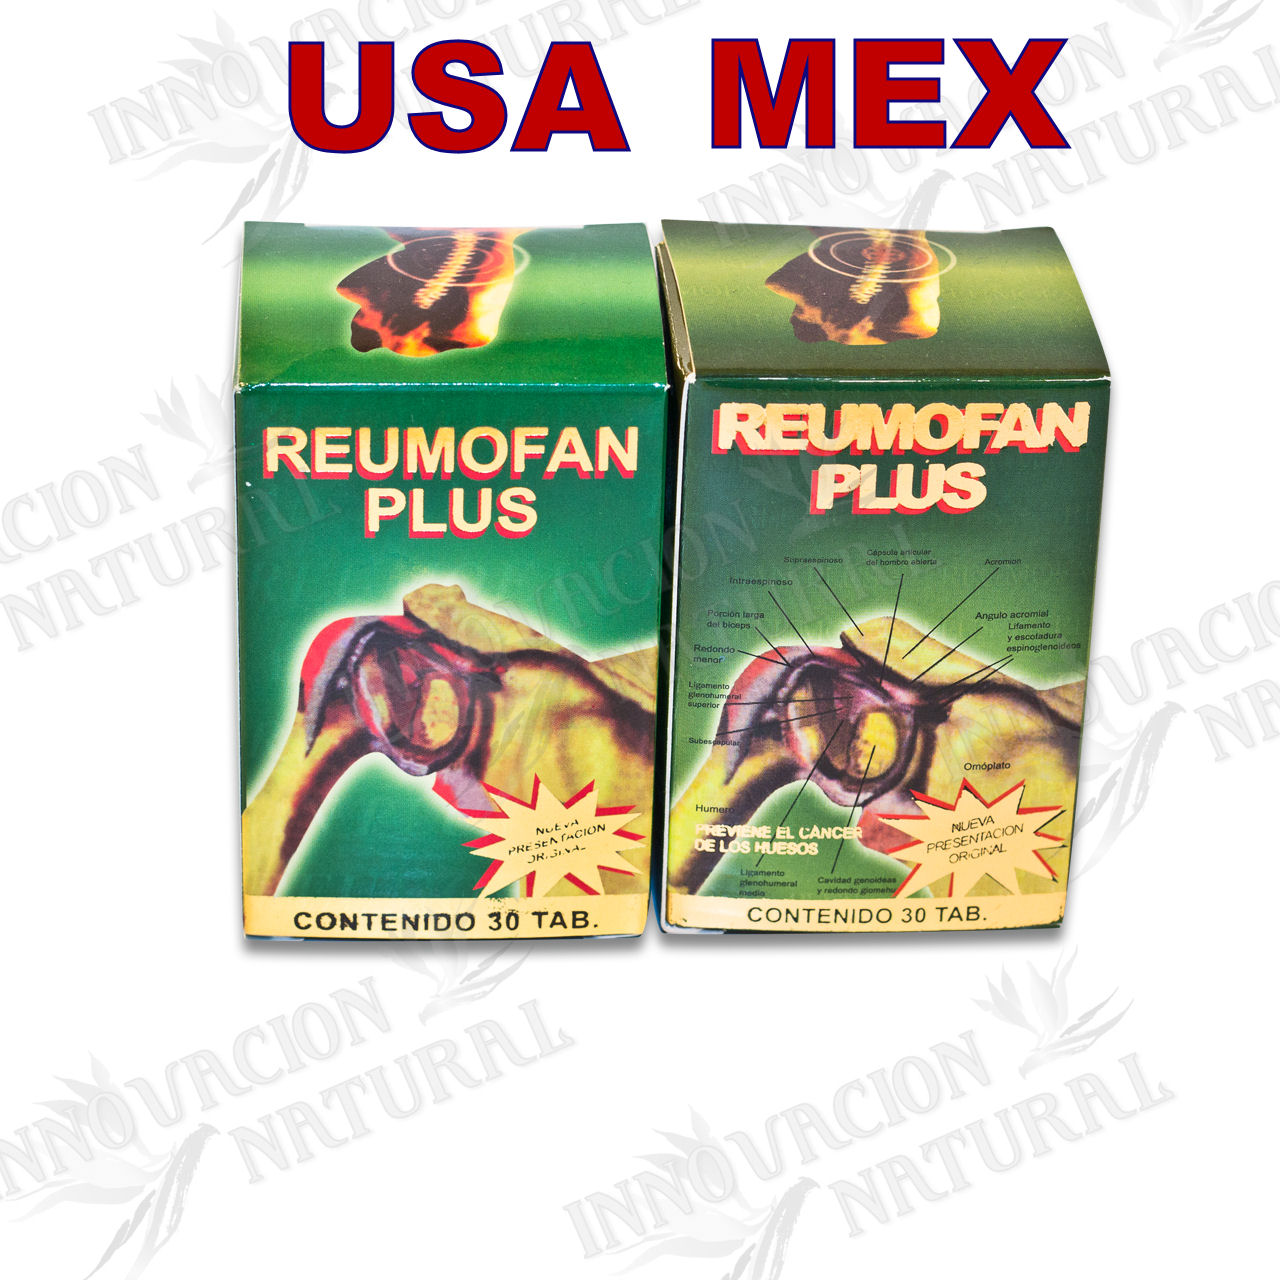 Reumofan Plus Box